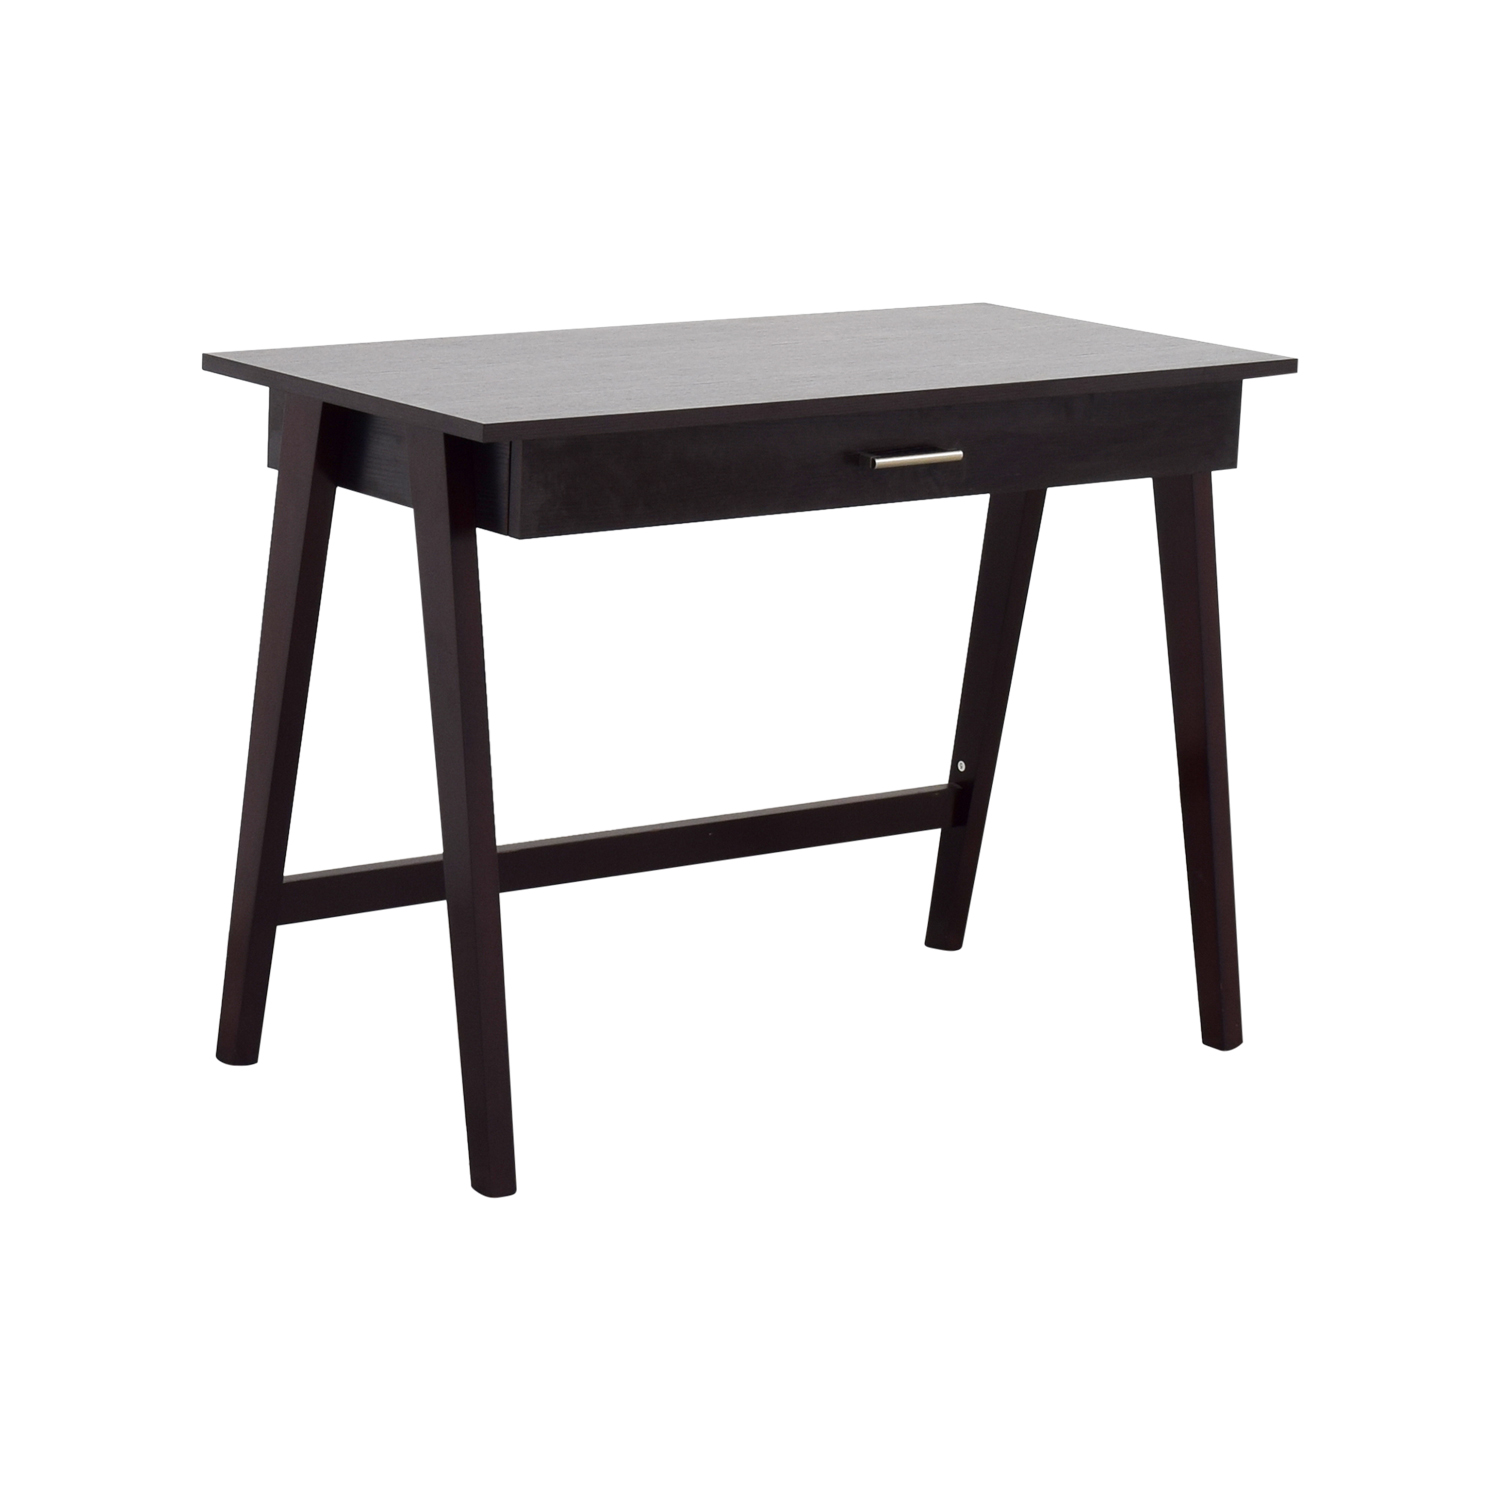 47% OFF - Target Target Paolo Desk / Tables